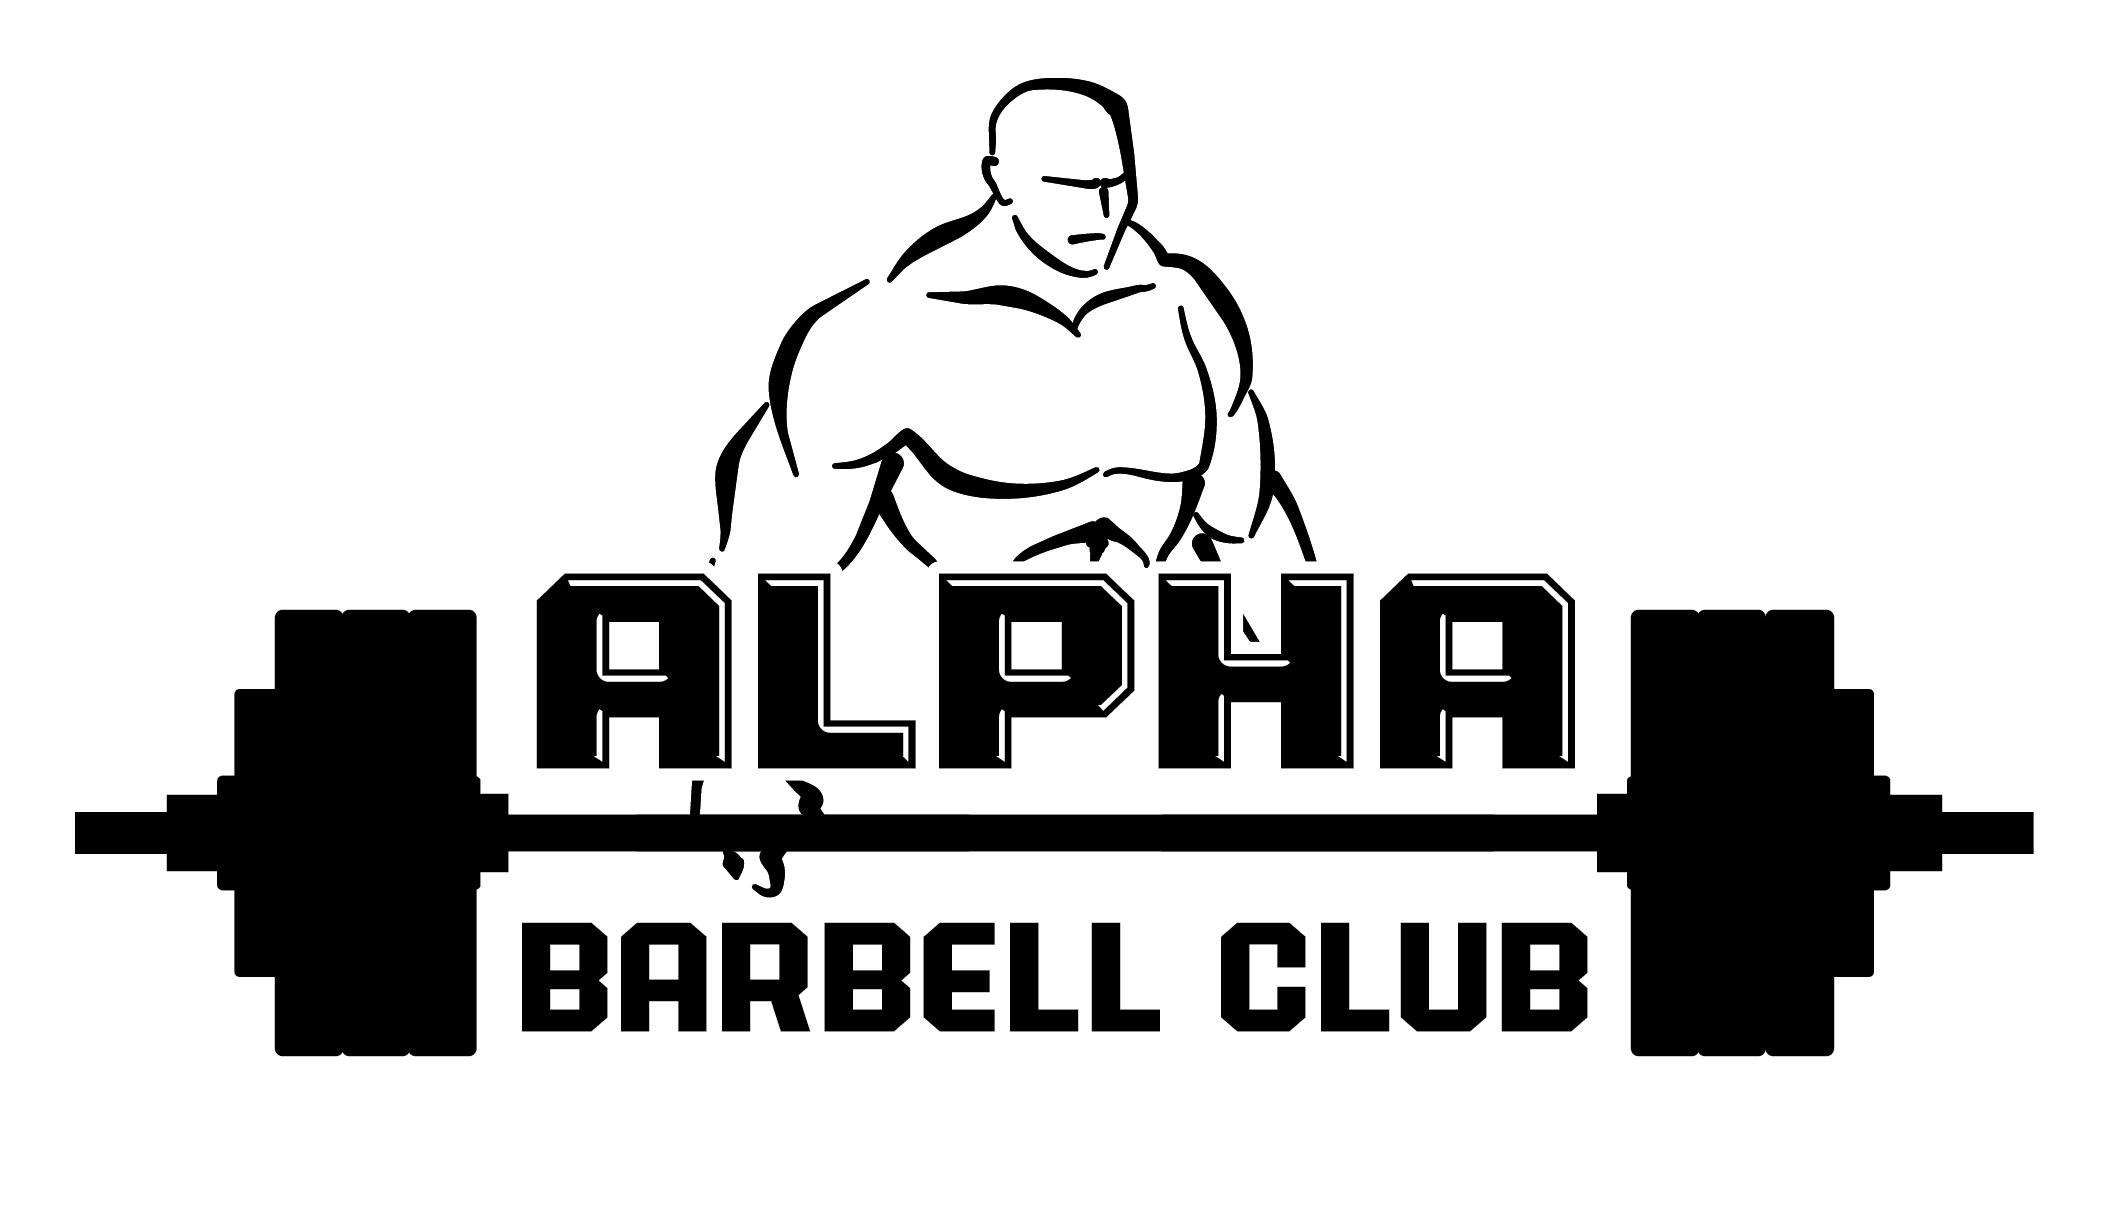 Alpha barbell club